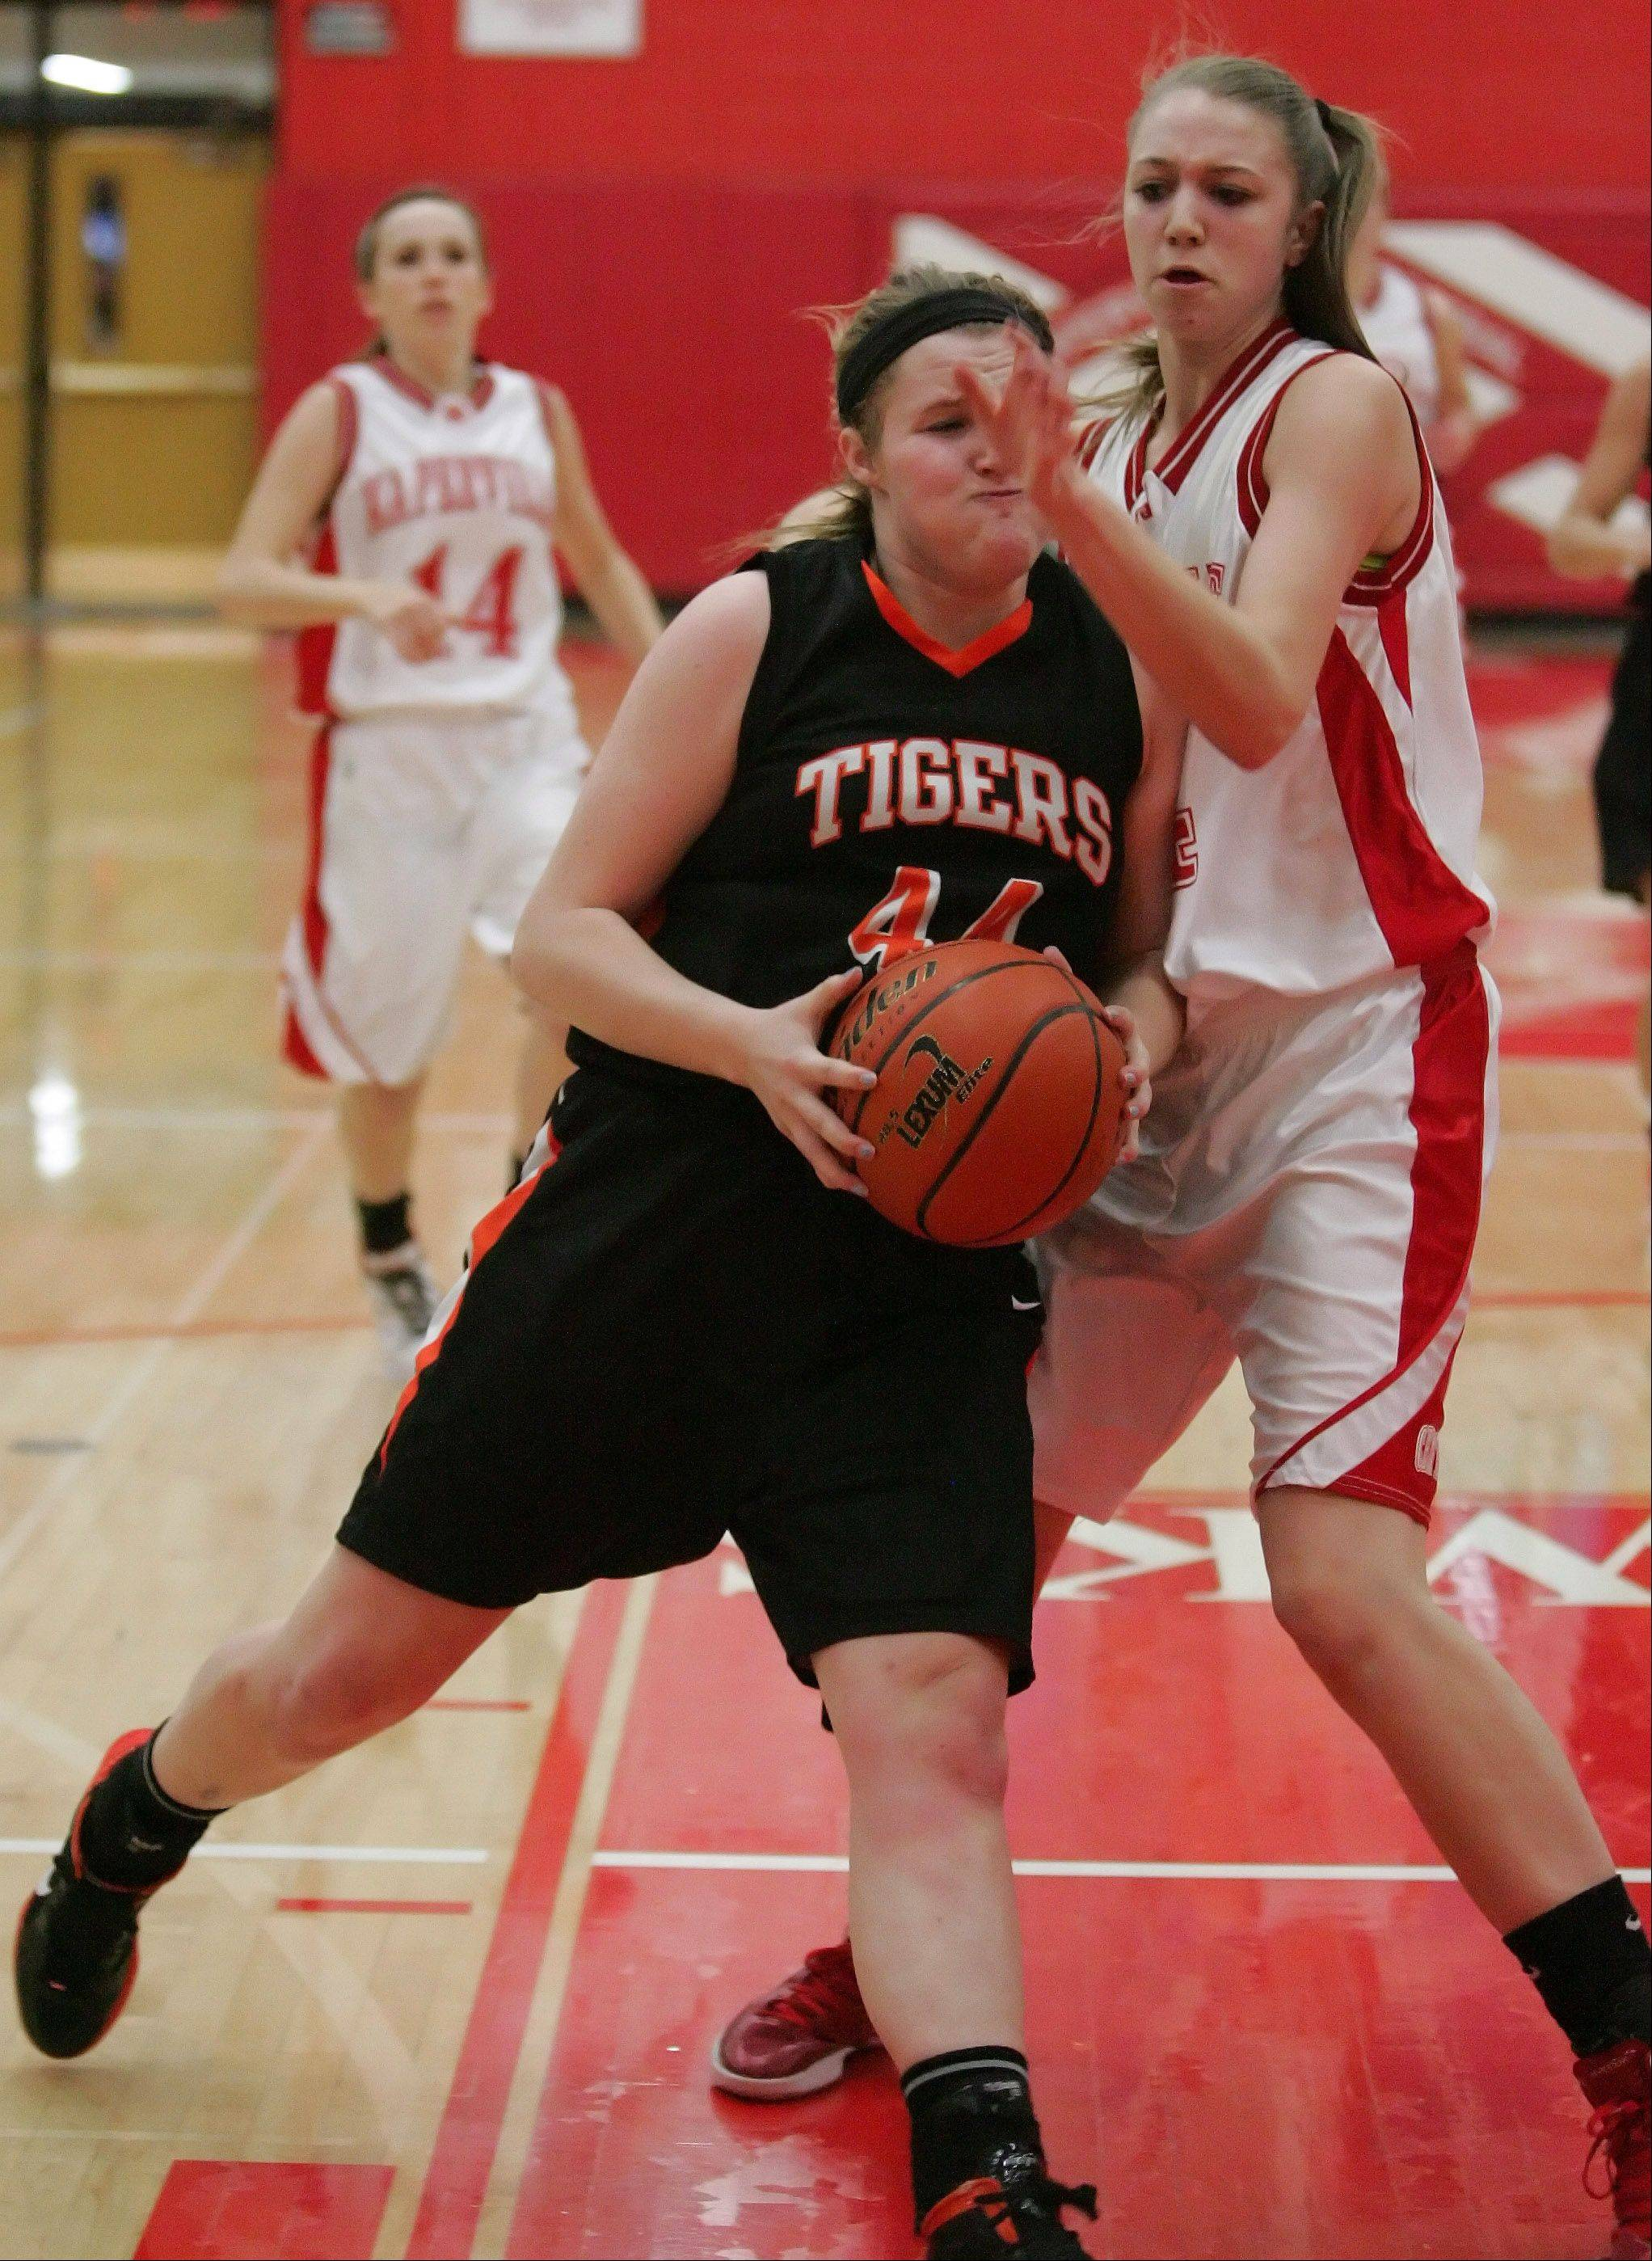 Olivia Linebarger, left, of Wheaton Warrenville South collides with Jamie Cuny of Naperville Central as she moves towards the basket.